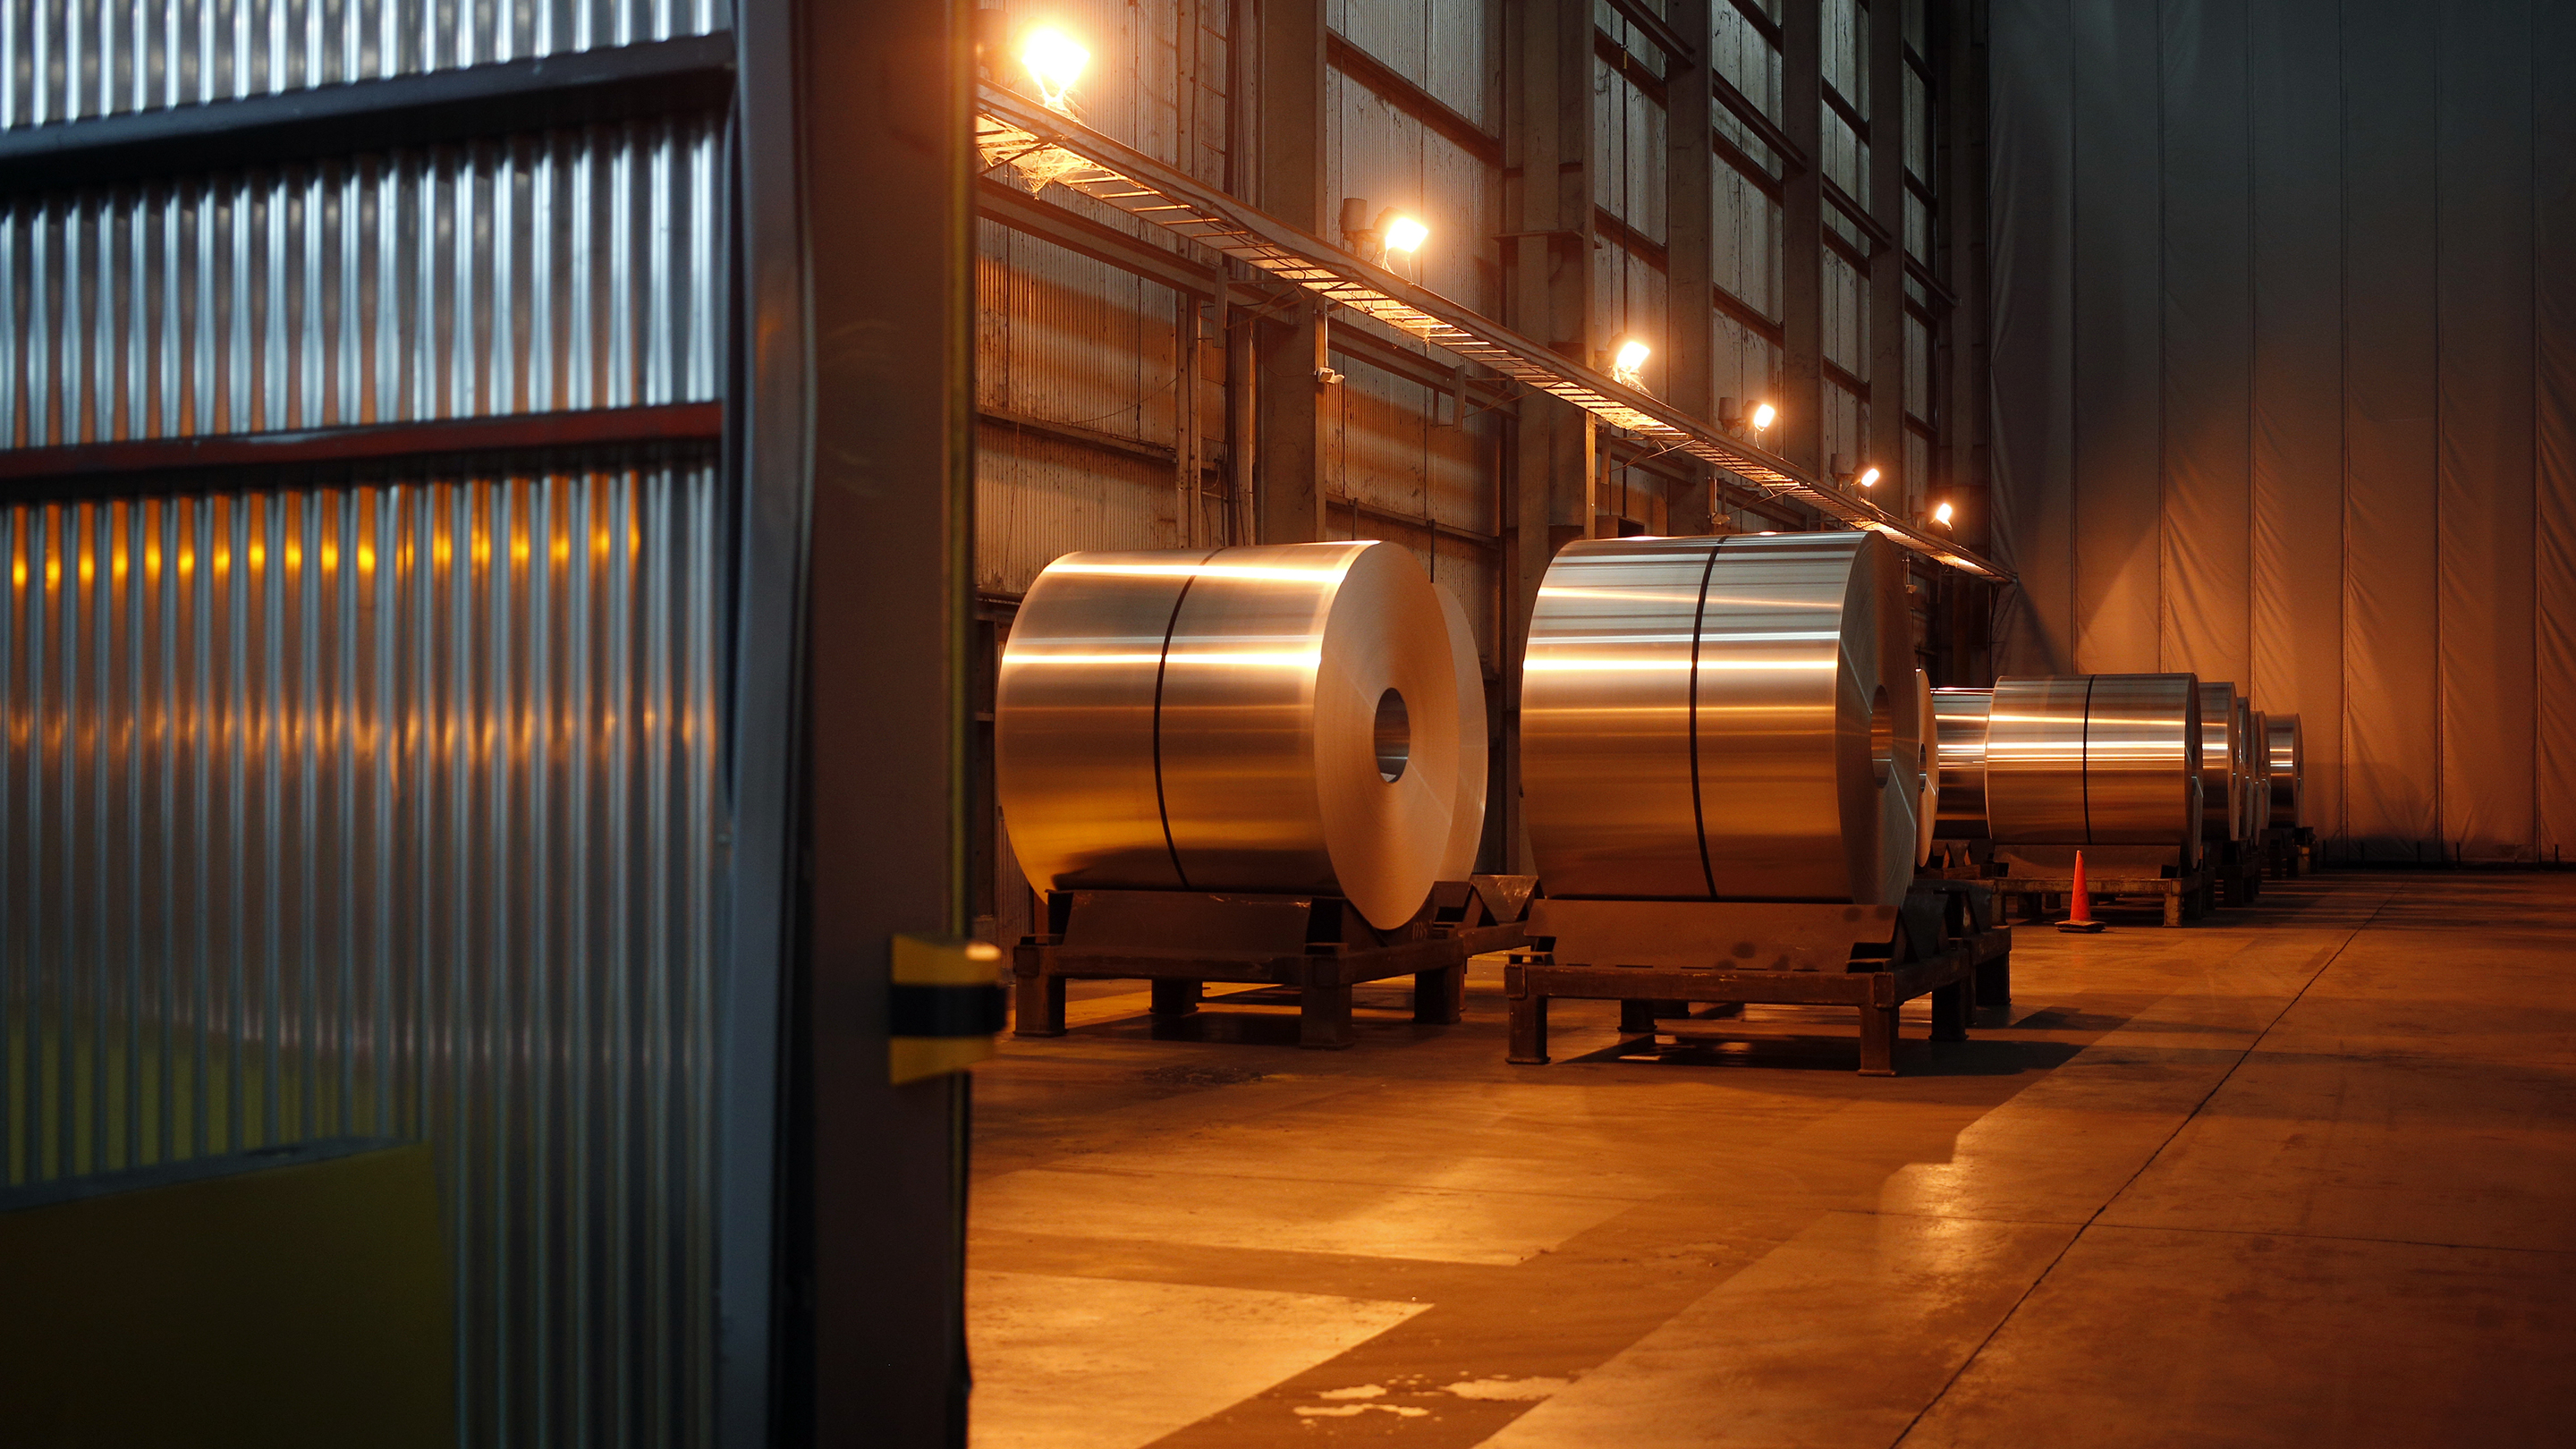 Operations Inside An Arconic Inc. Aluminum Coil Manufacturing Facility Ahead Of Earnings Figures